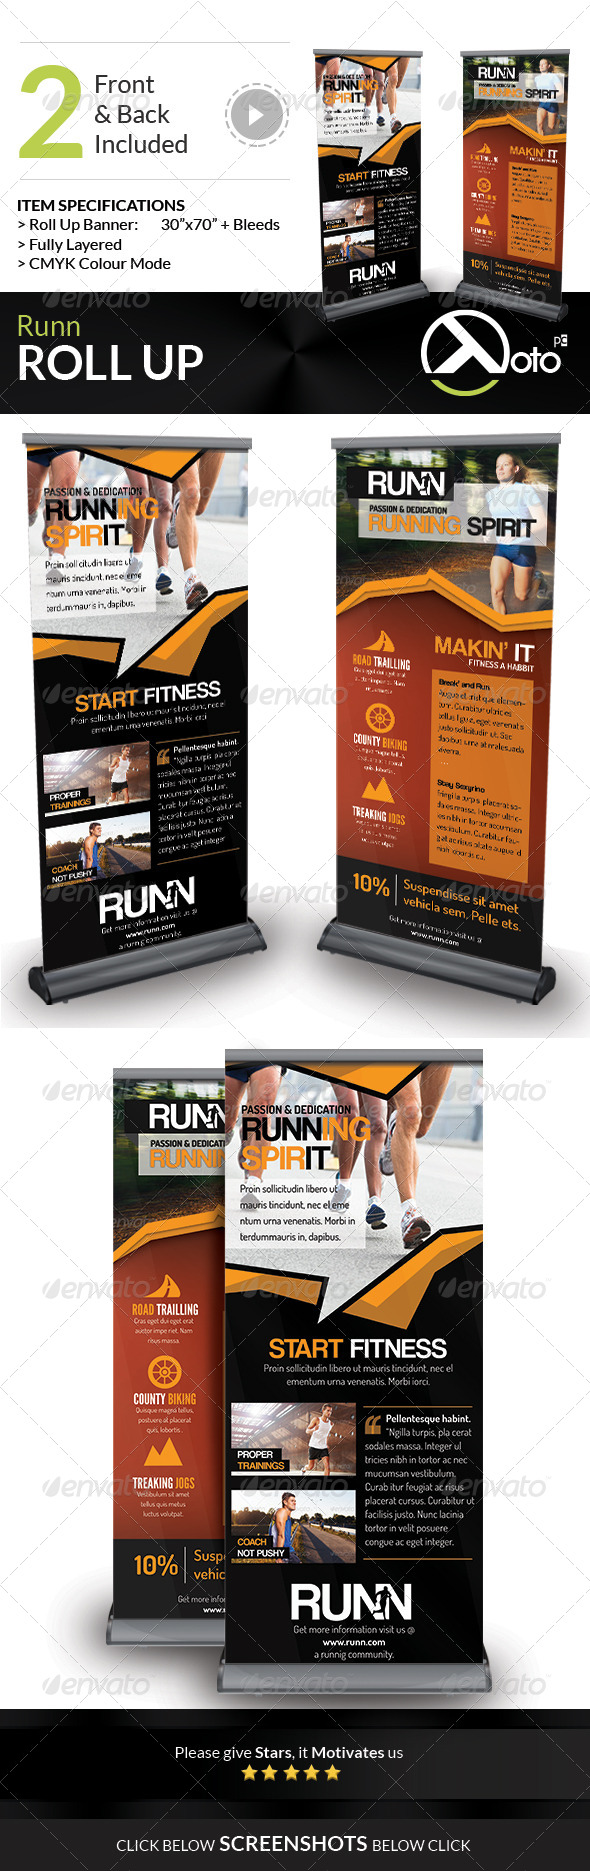 GraphicRiver Runn Marathon Running Club Fitness Rollup Banners 8078455